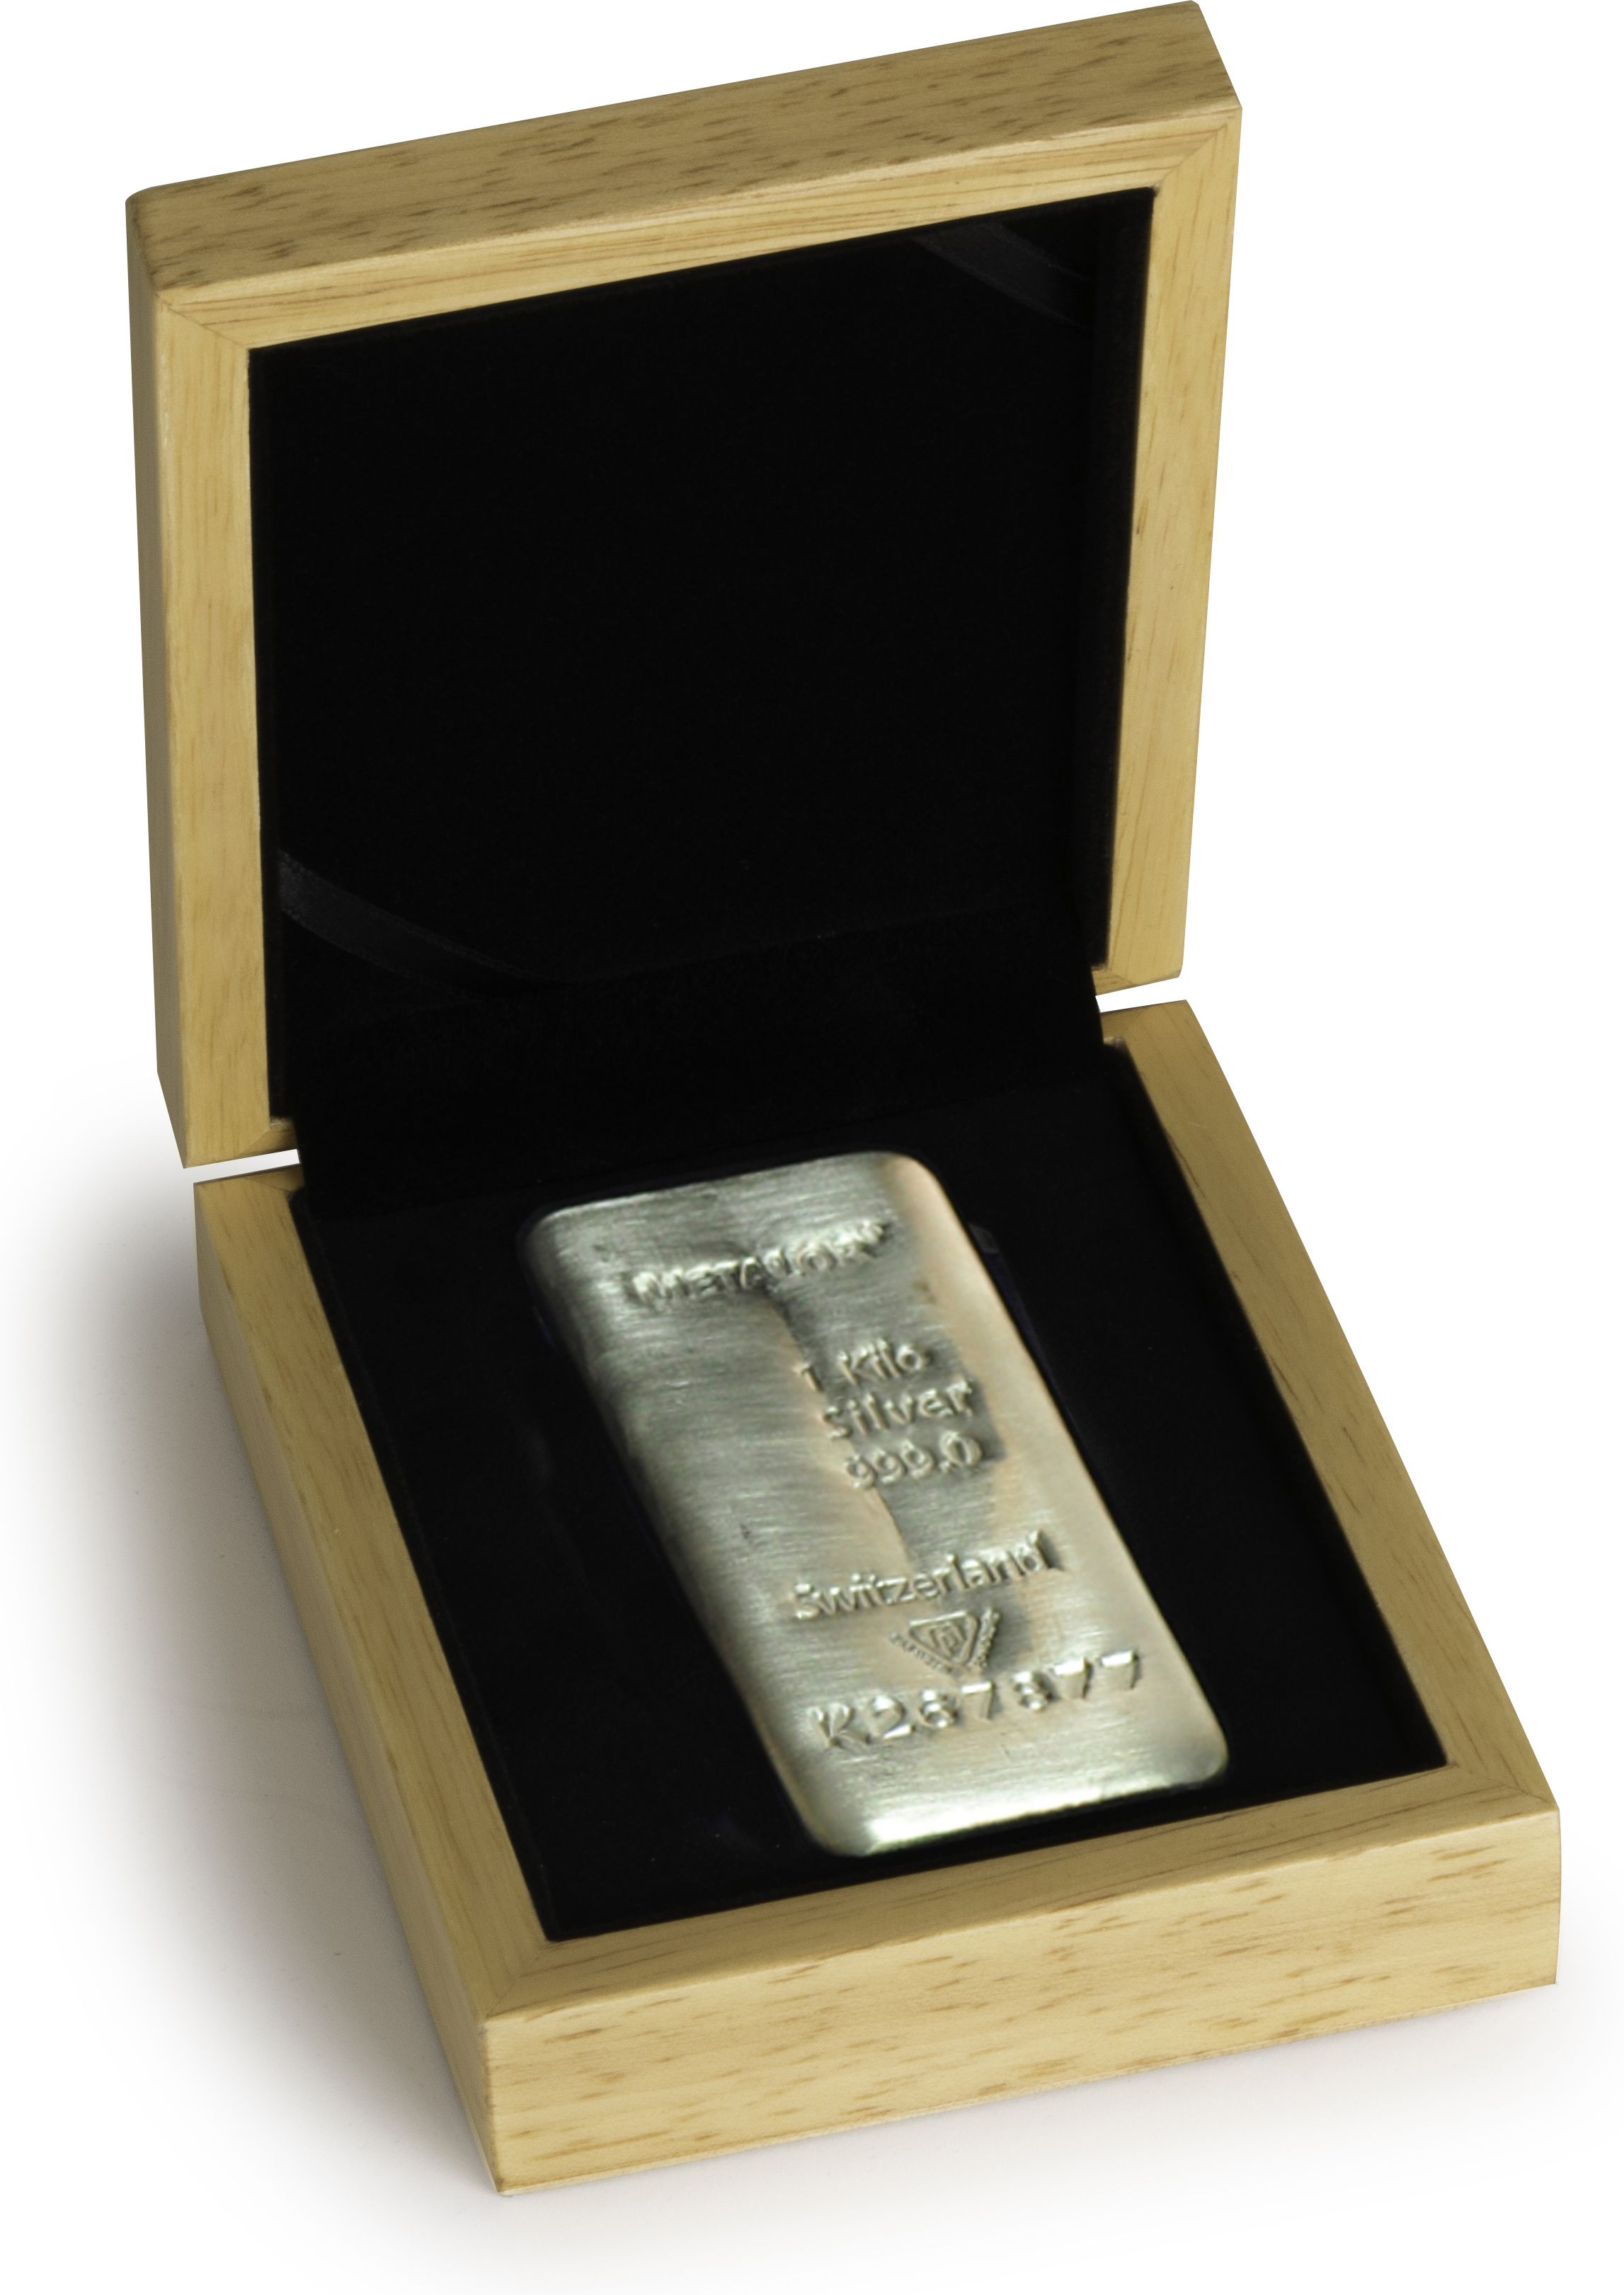 Metalor 1 Kilo Silver Bullion Bar in Gift Box